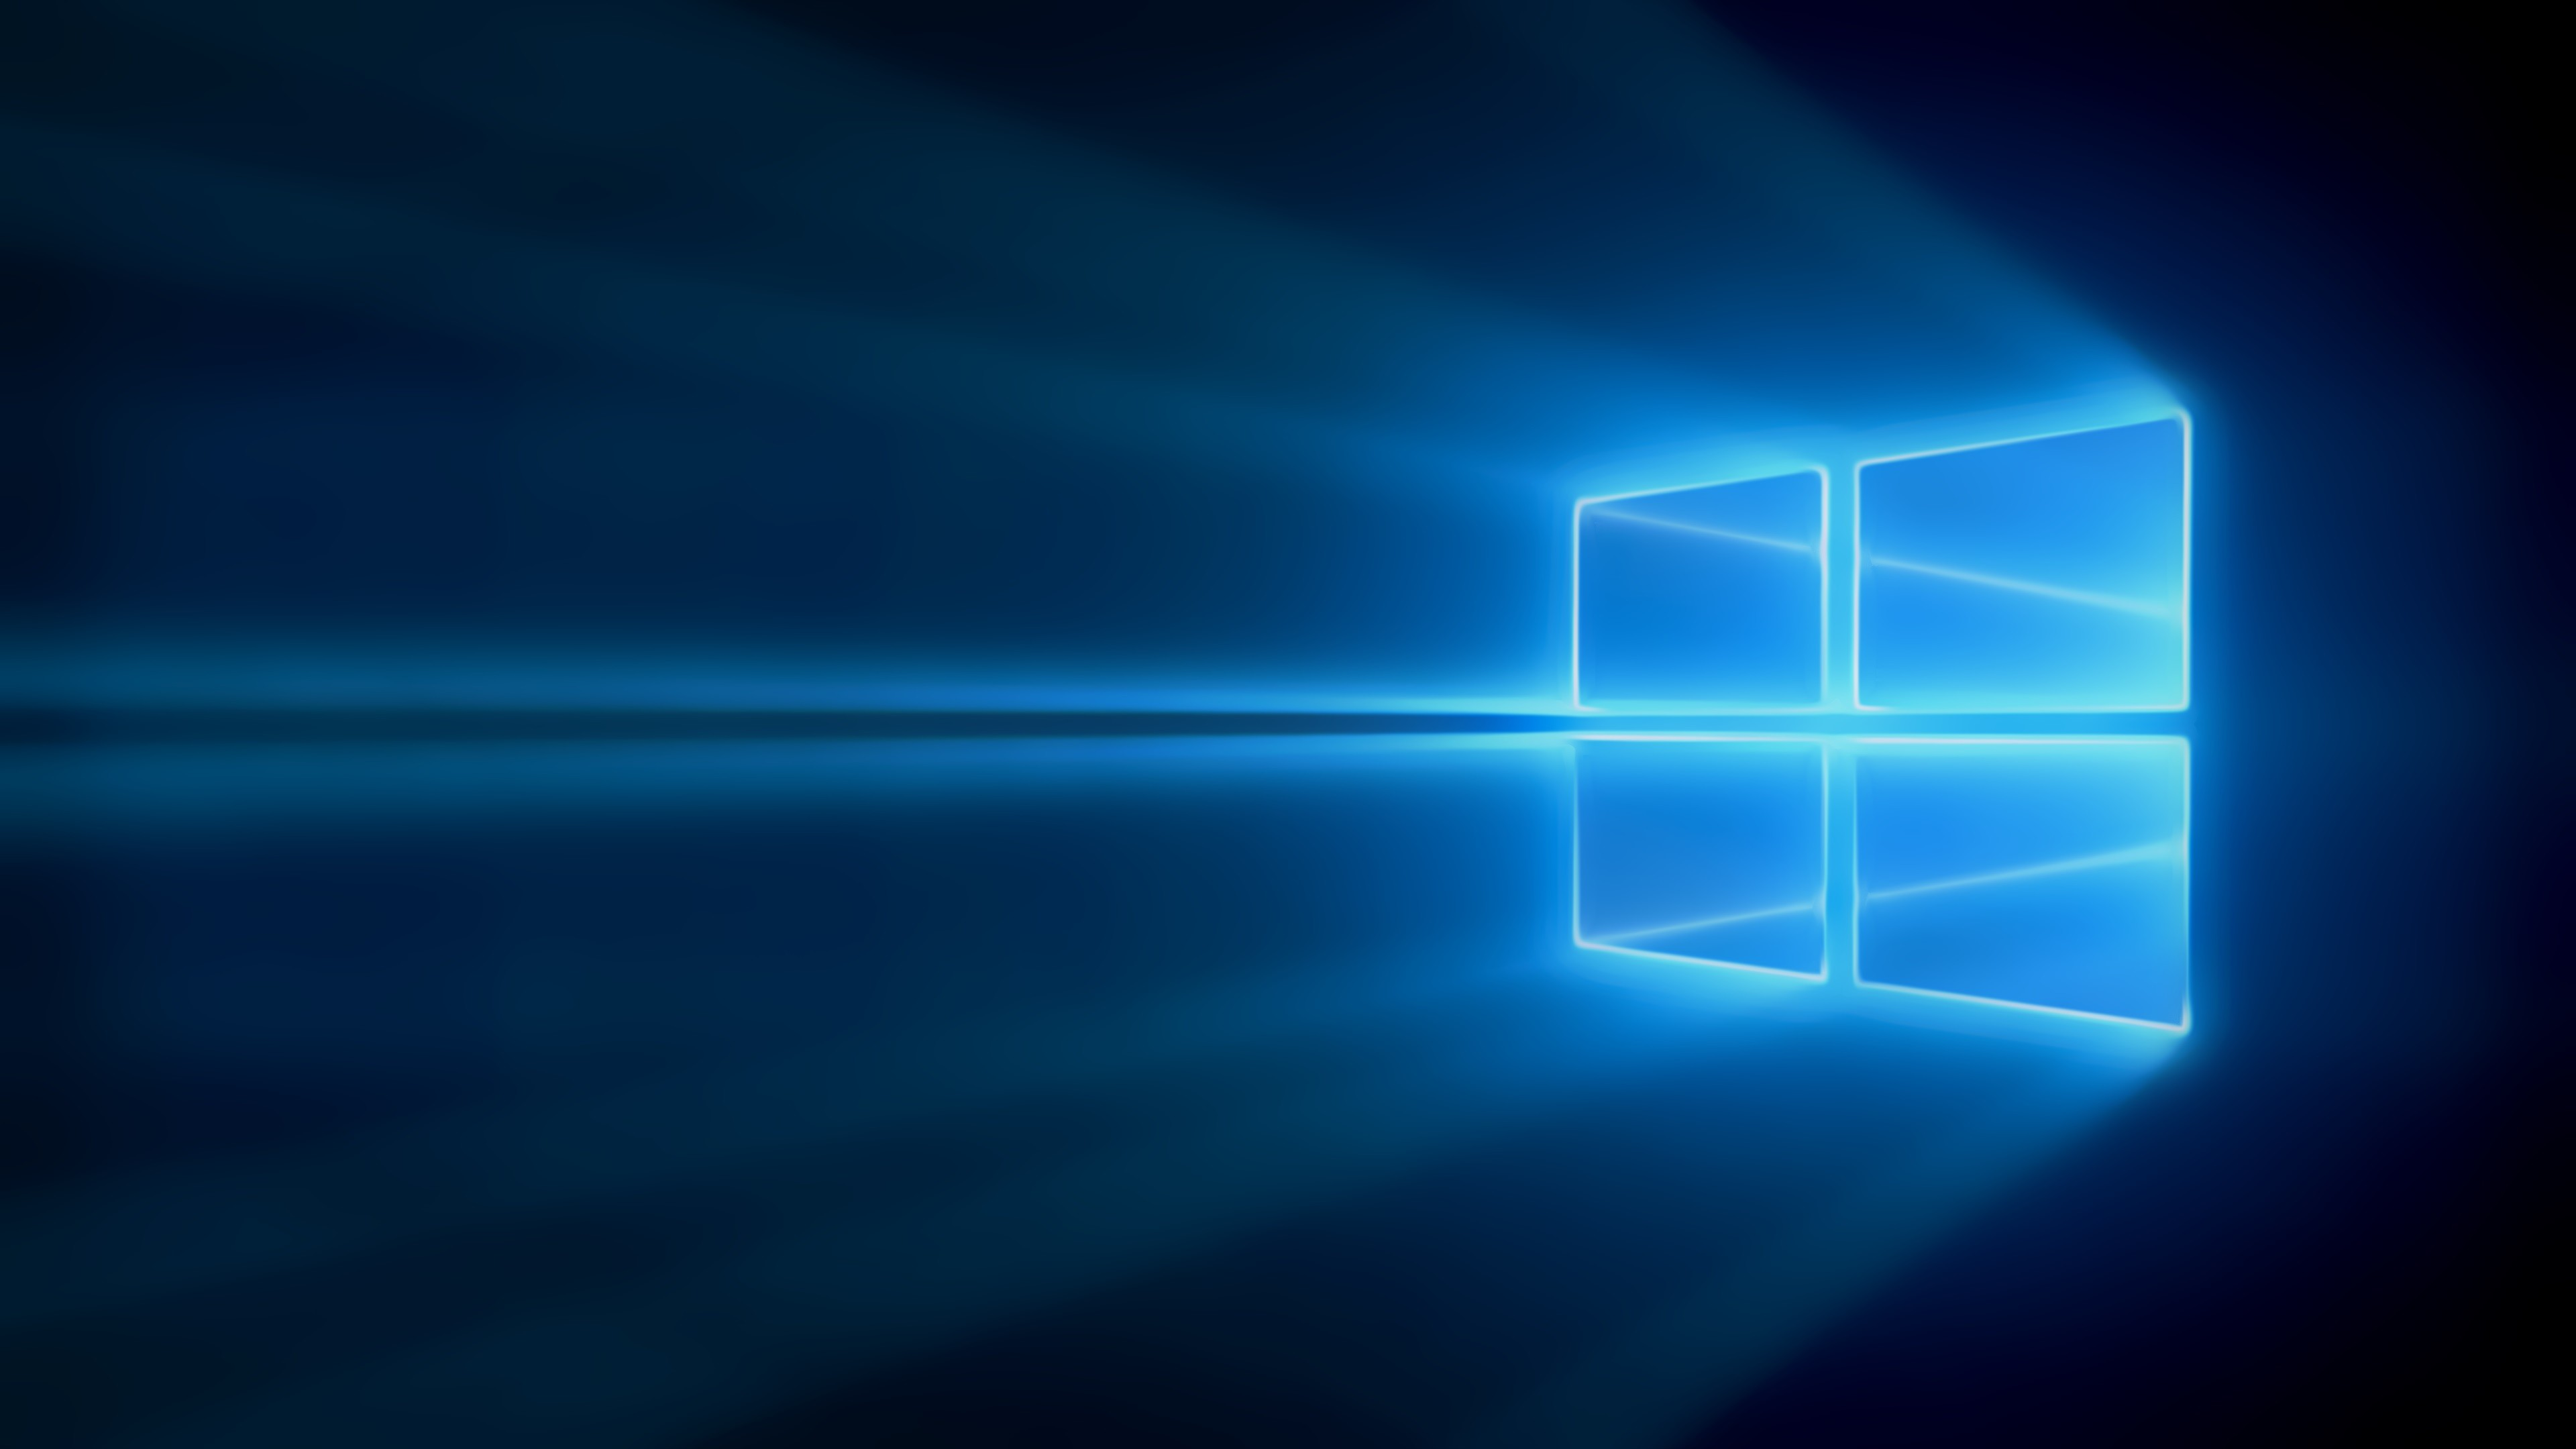 Fonds d'écran Windows 10